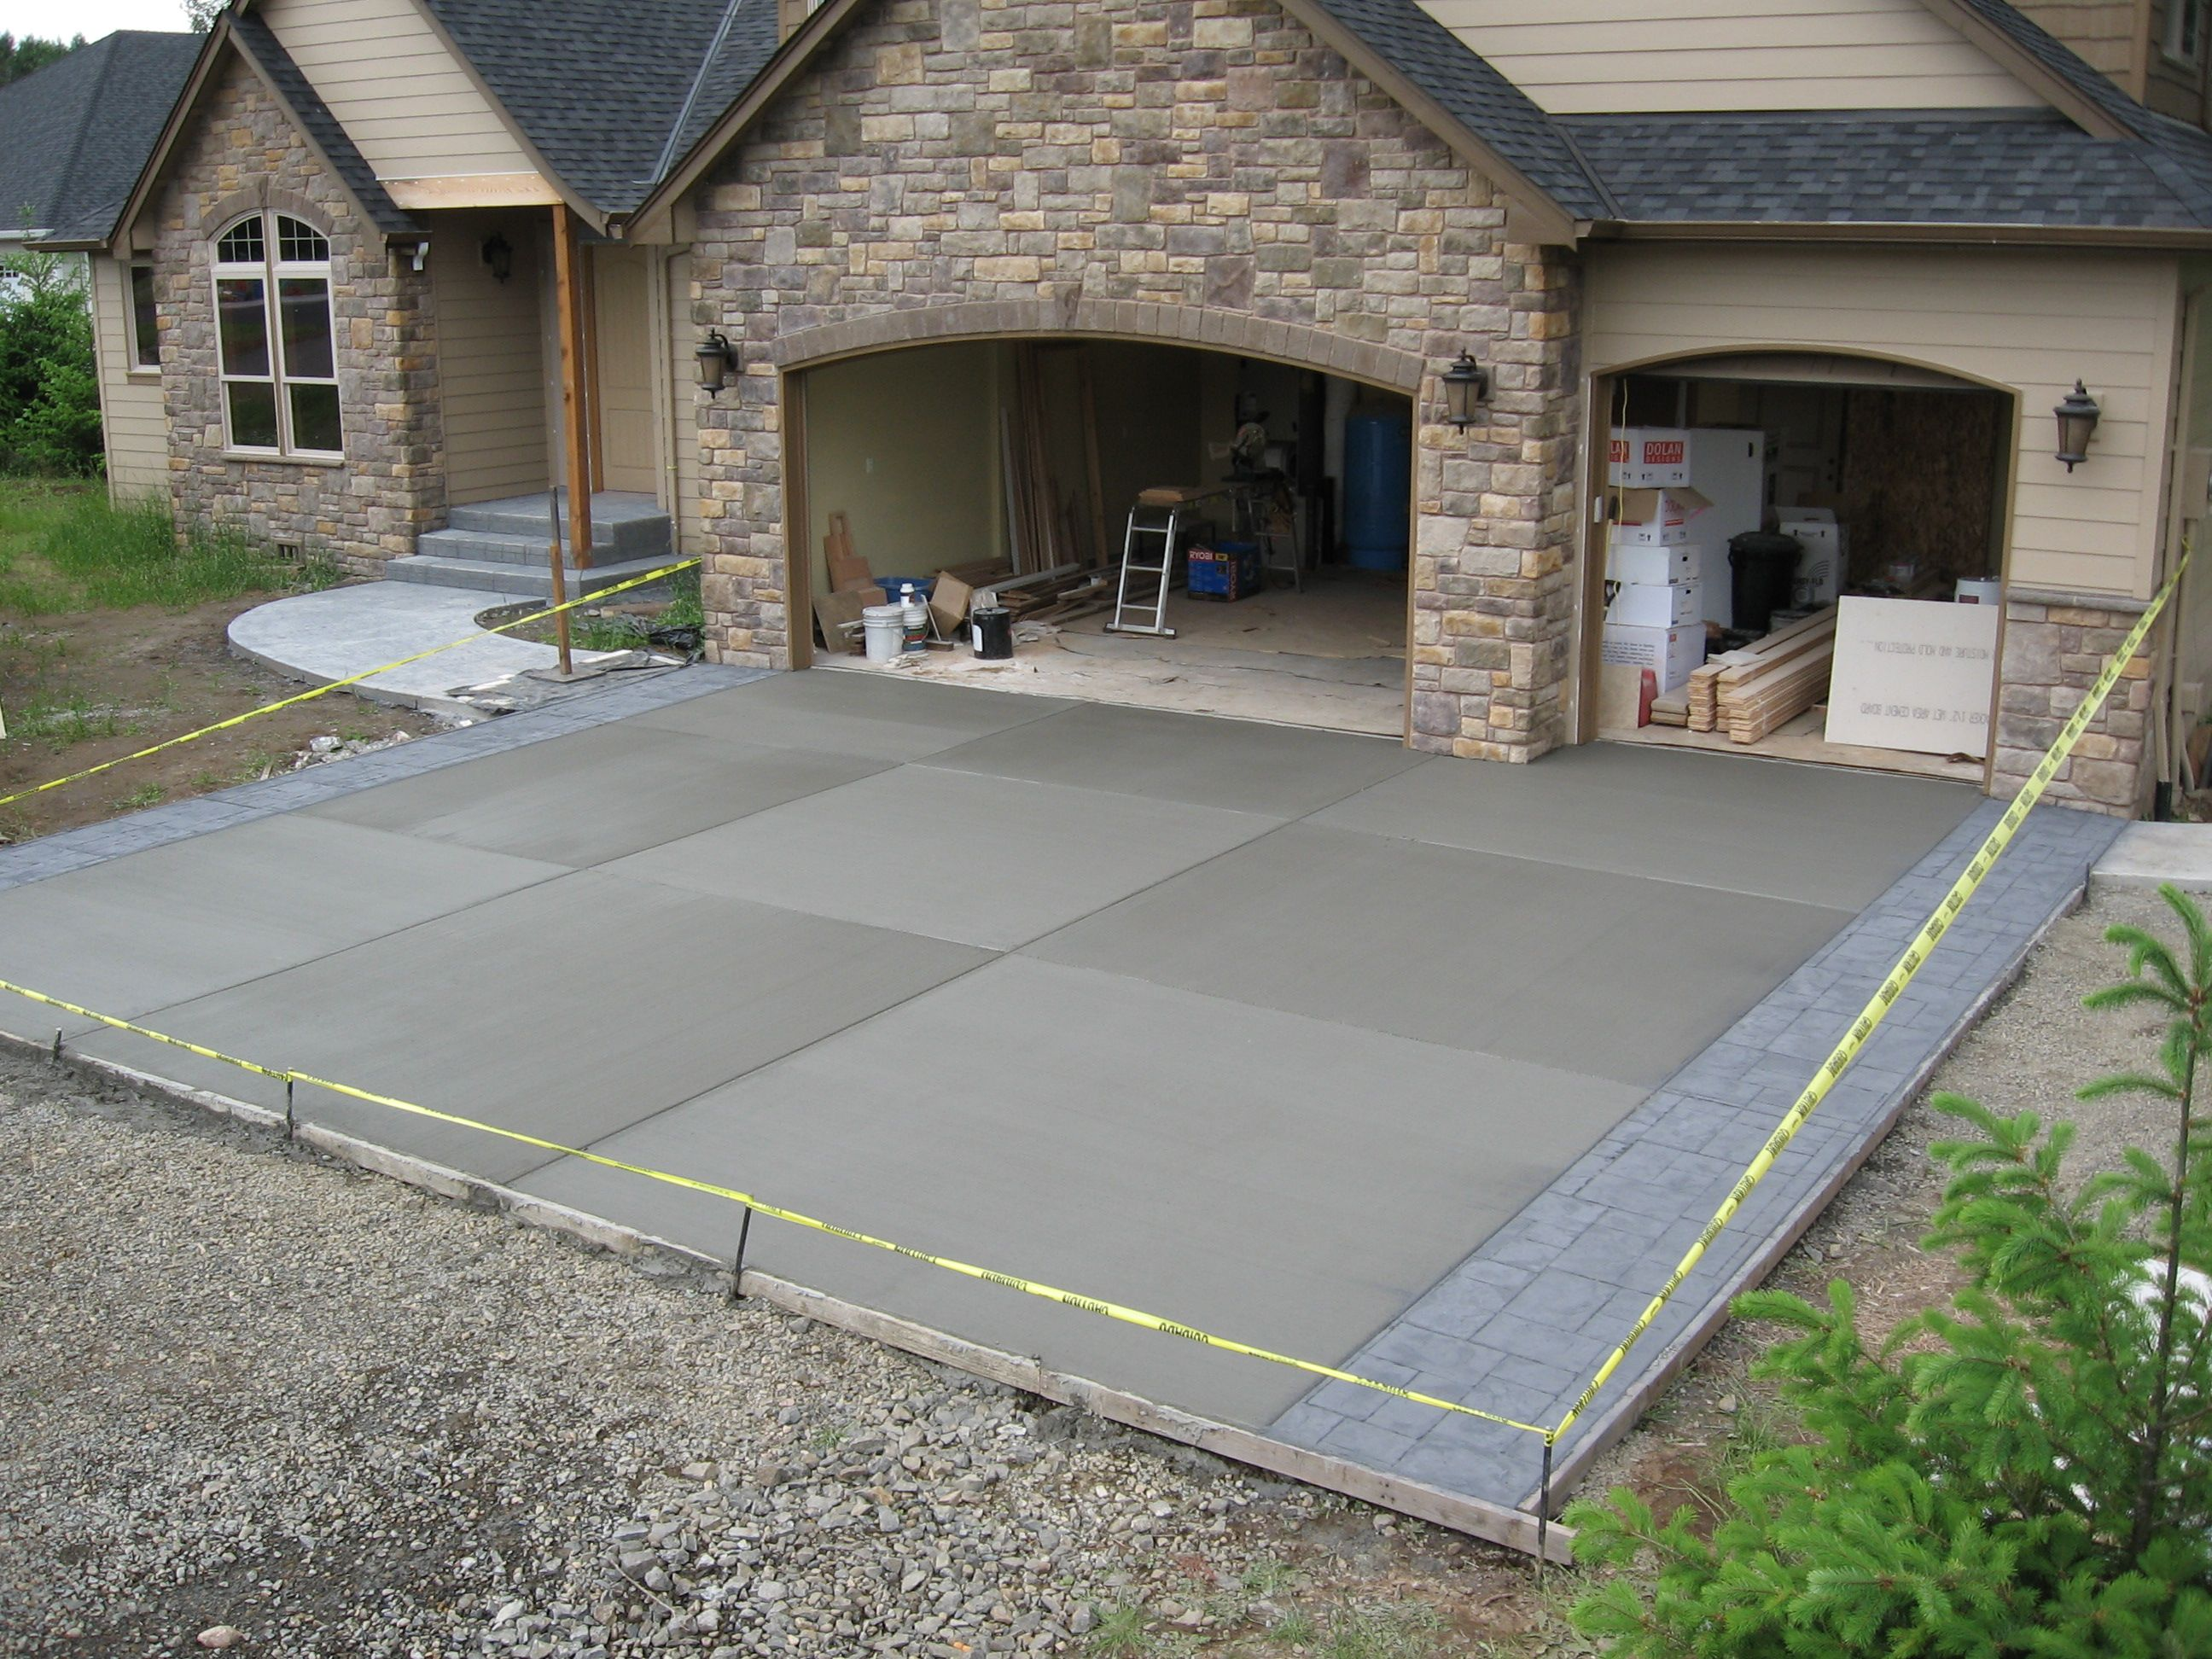 Concrete Driveway Design Ideas stamped concrete rochester ny concrete patio ideas backyard I Like The Large Squares And The Different Shades Between Them I Also Like The Concrete Drivewaysdriveway Ideasstamped